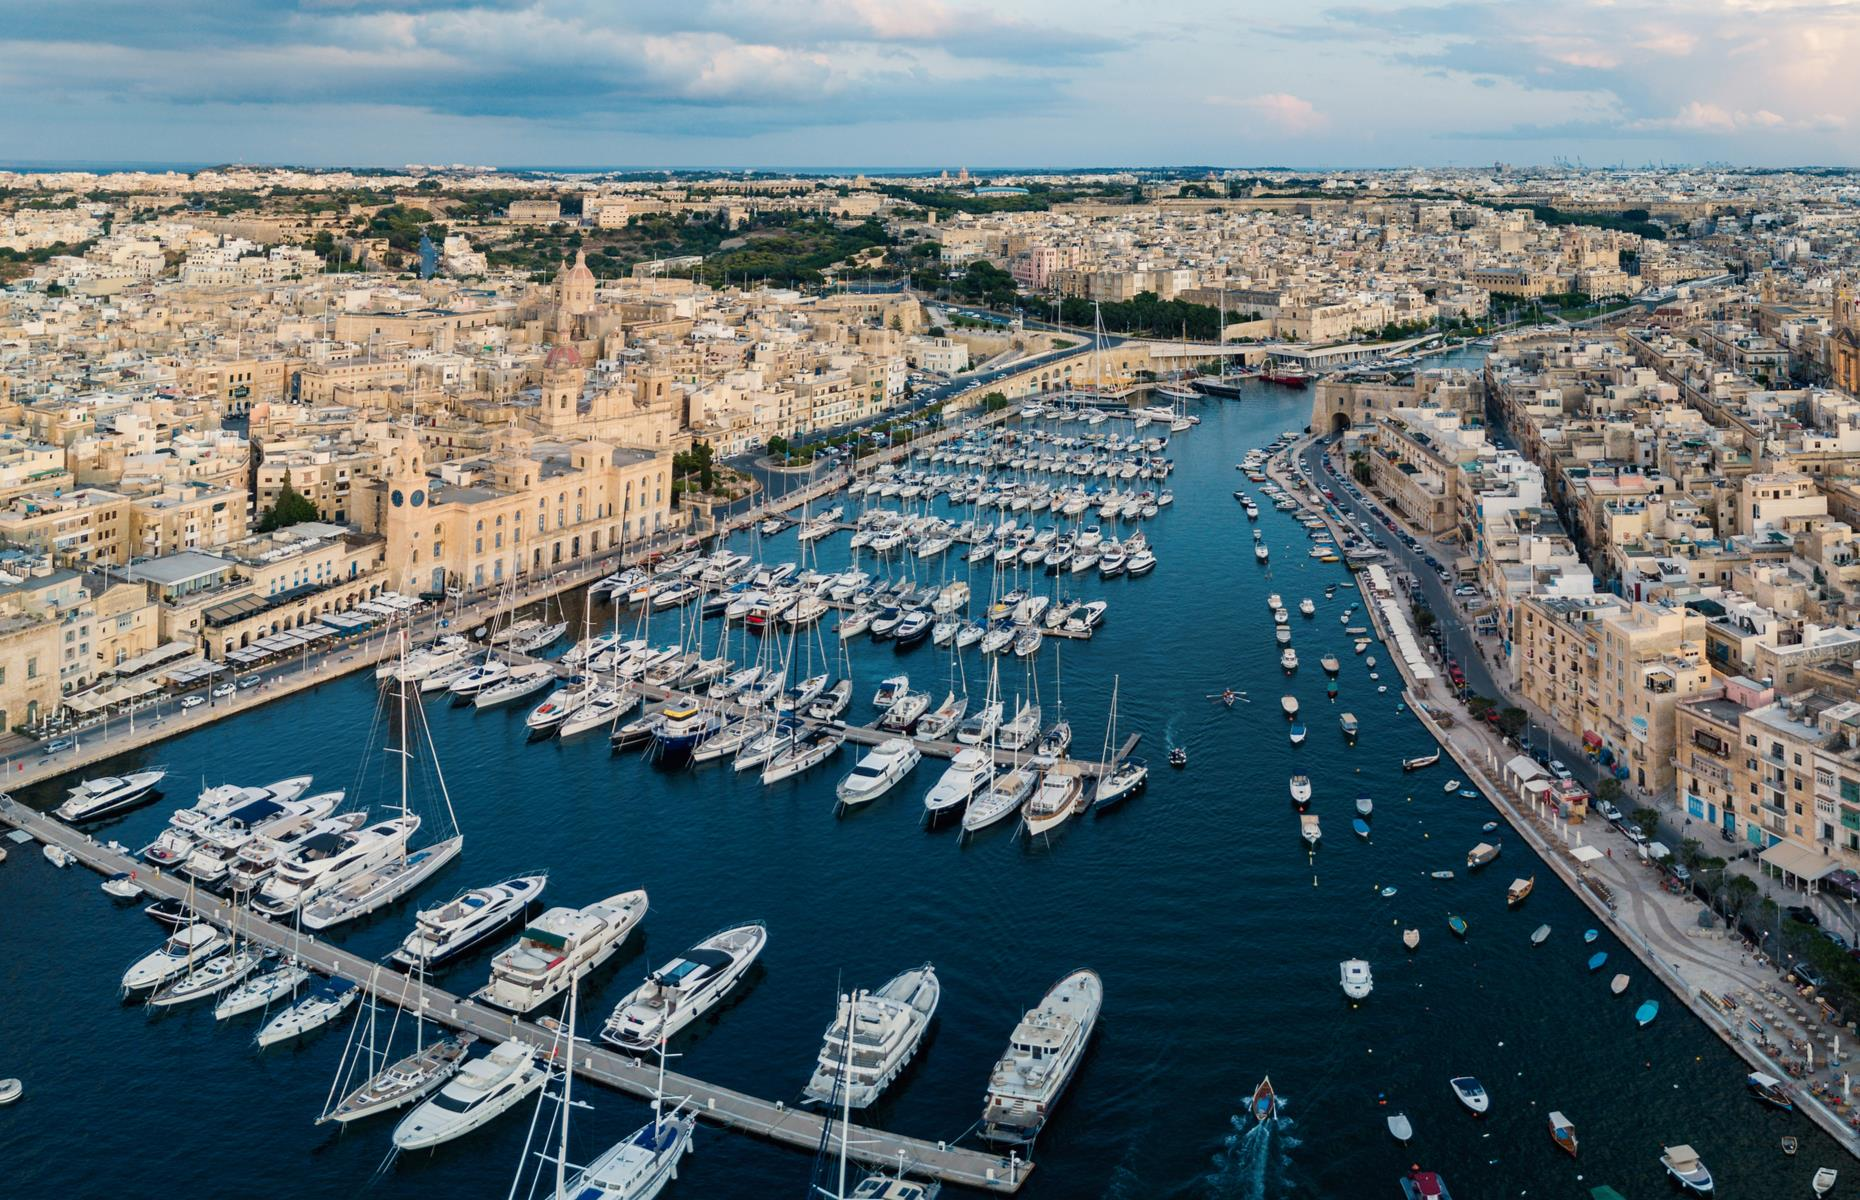 Slide 8 of 31: Filled with a dazzling array of luxury yachts, Valletta's Grand Harbour is the hub of this historic city. The port has been used for trade since Roman times, although nowadays it's focused on cruise ships as opposed to cargo. Take a look at our city guide to Valletta.